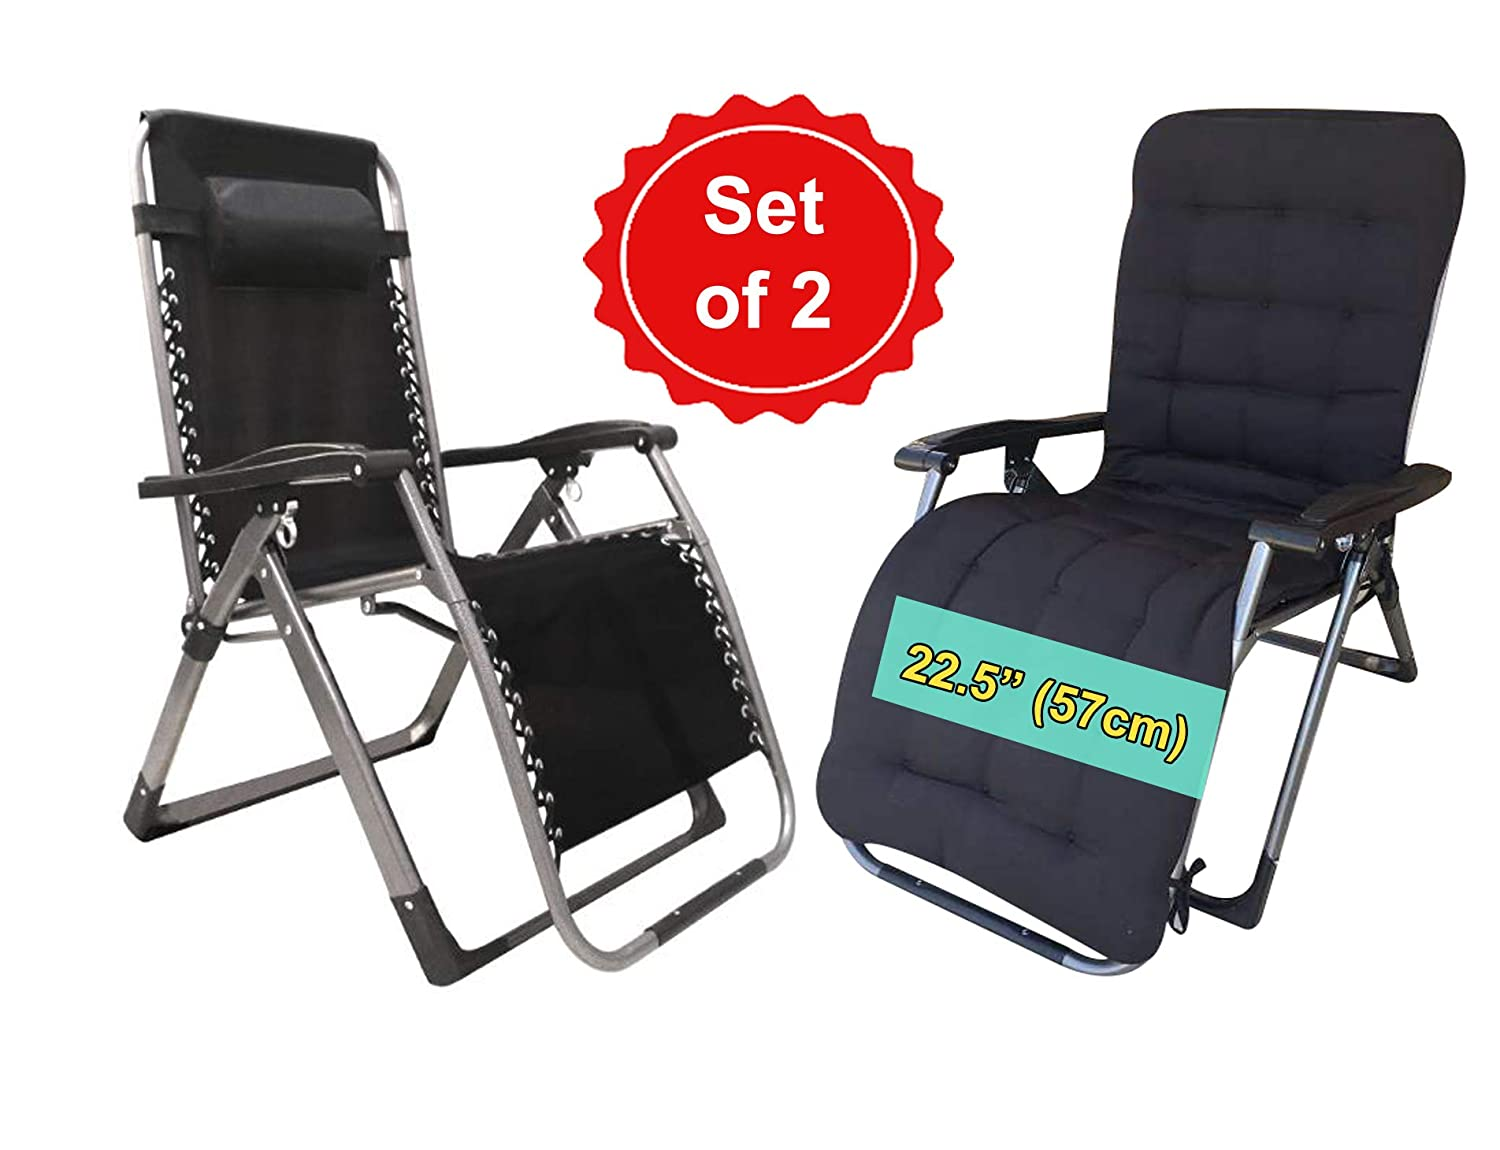 FOUR SEASONS Heavy Duty Zero Gravity Chair Recliner Square Legs Support 330 LBS